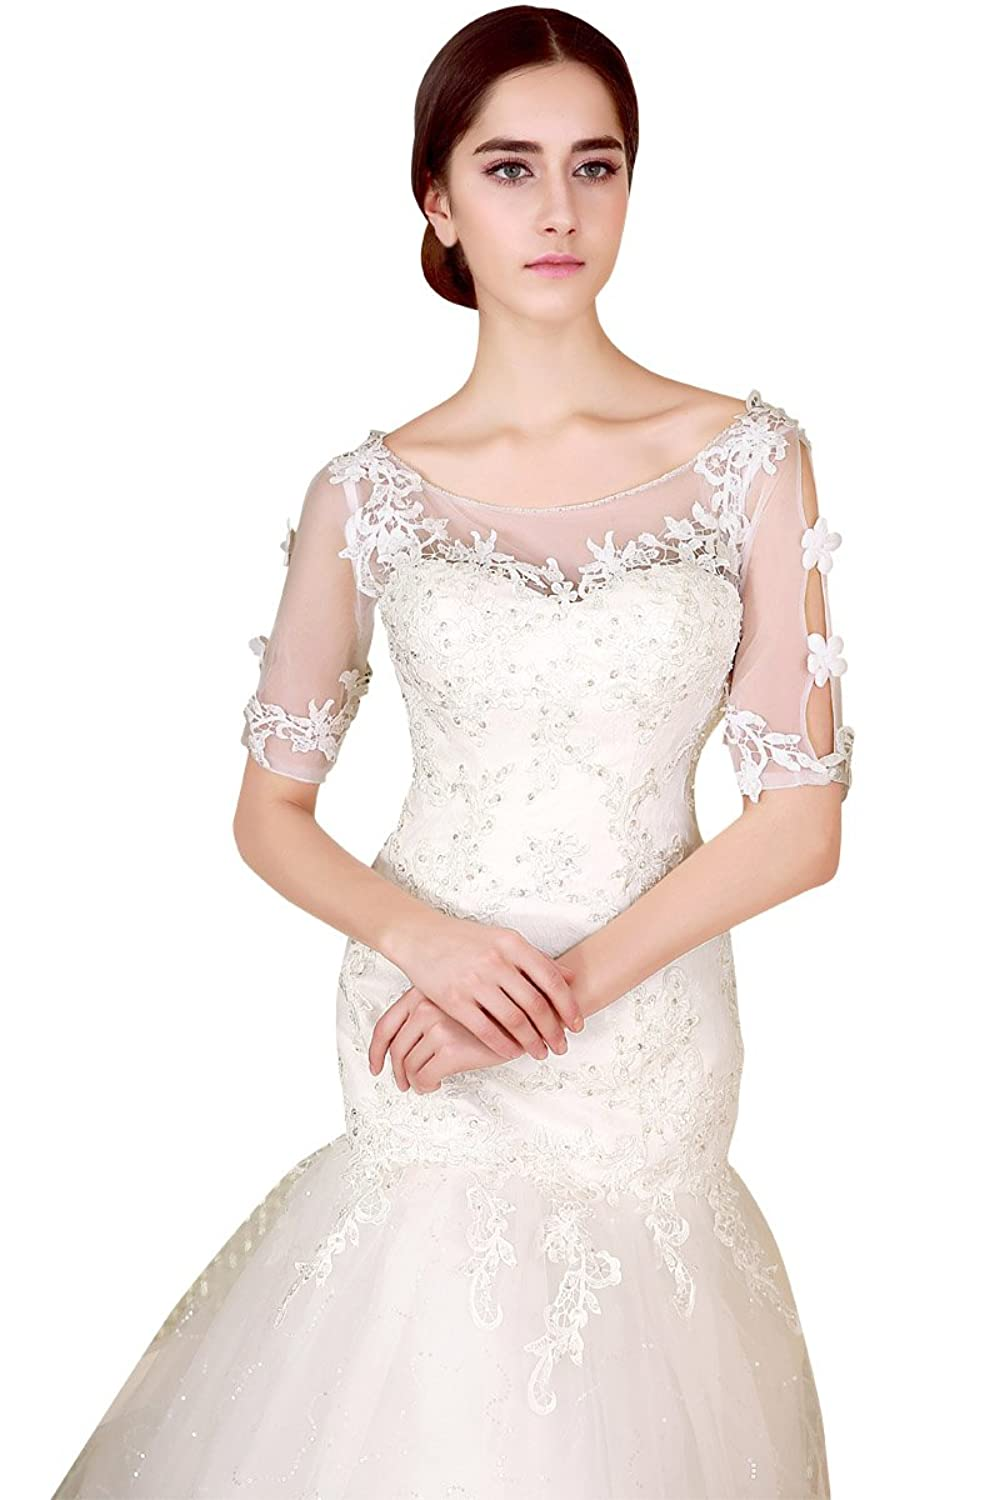 Sarahbridal Women's Elegant Sheer Neck Beaded Wedding Dresses Lace Mermaid Brides Dress with Short Sleeves Applique SZCL06